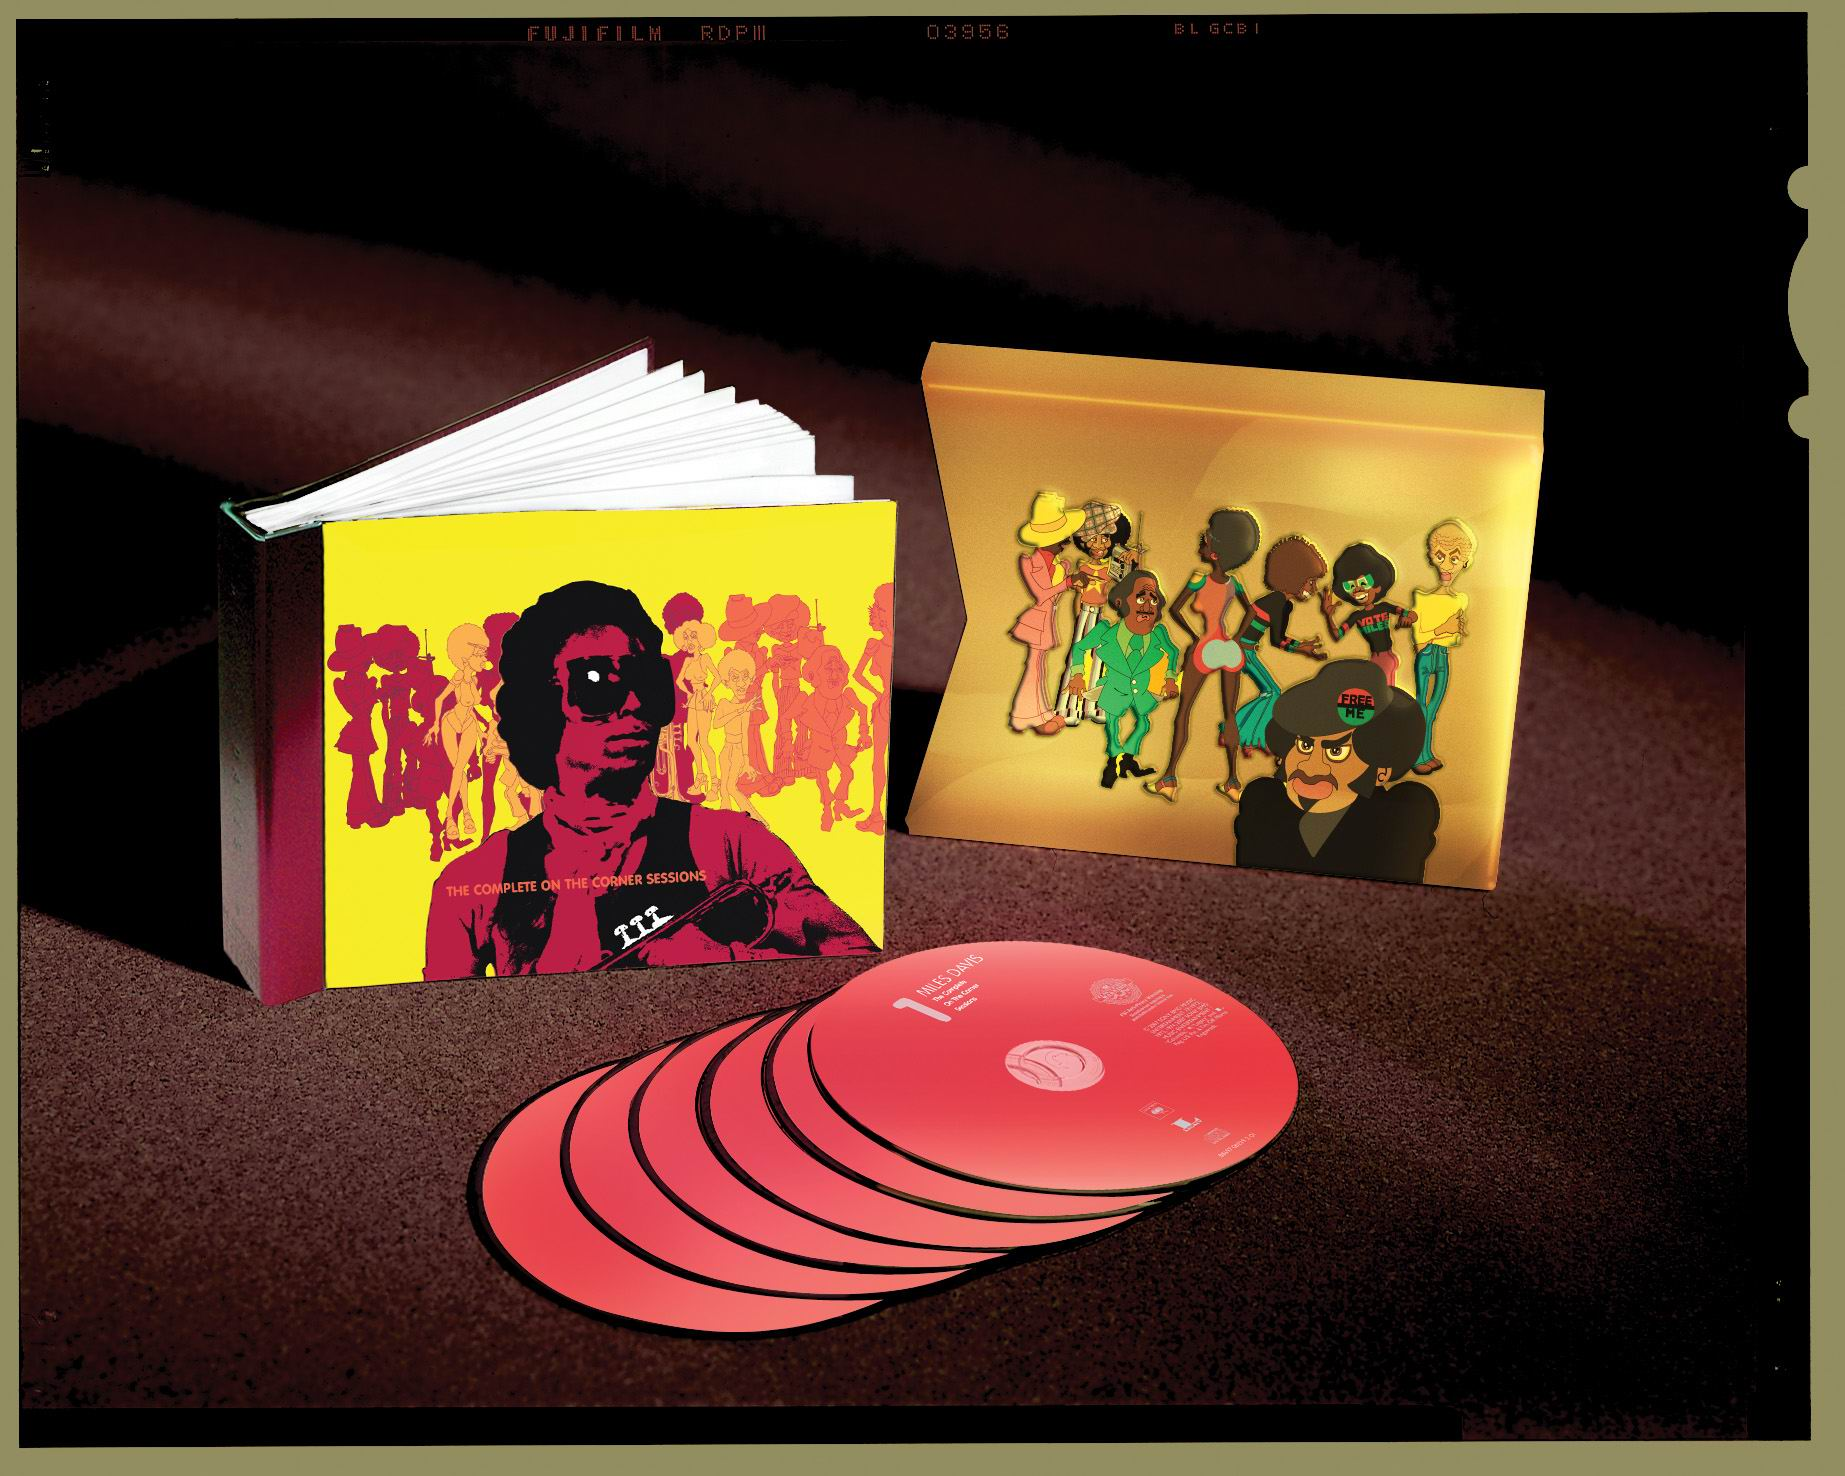 Miles Davis Box Set Quot The Complete On The Corner Sessions